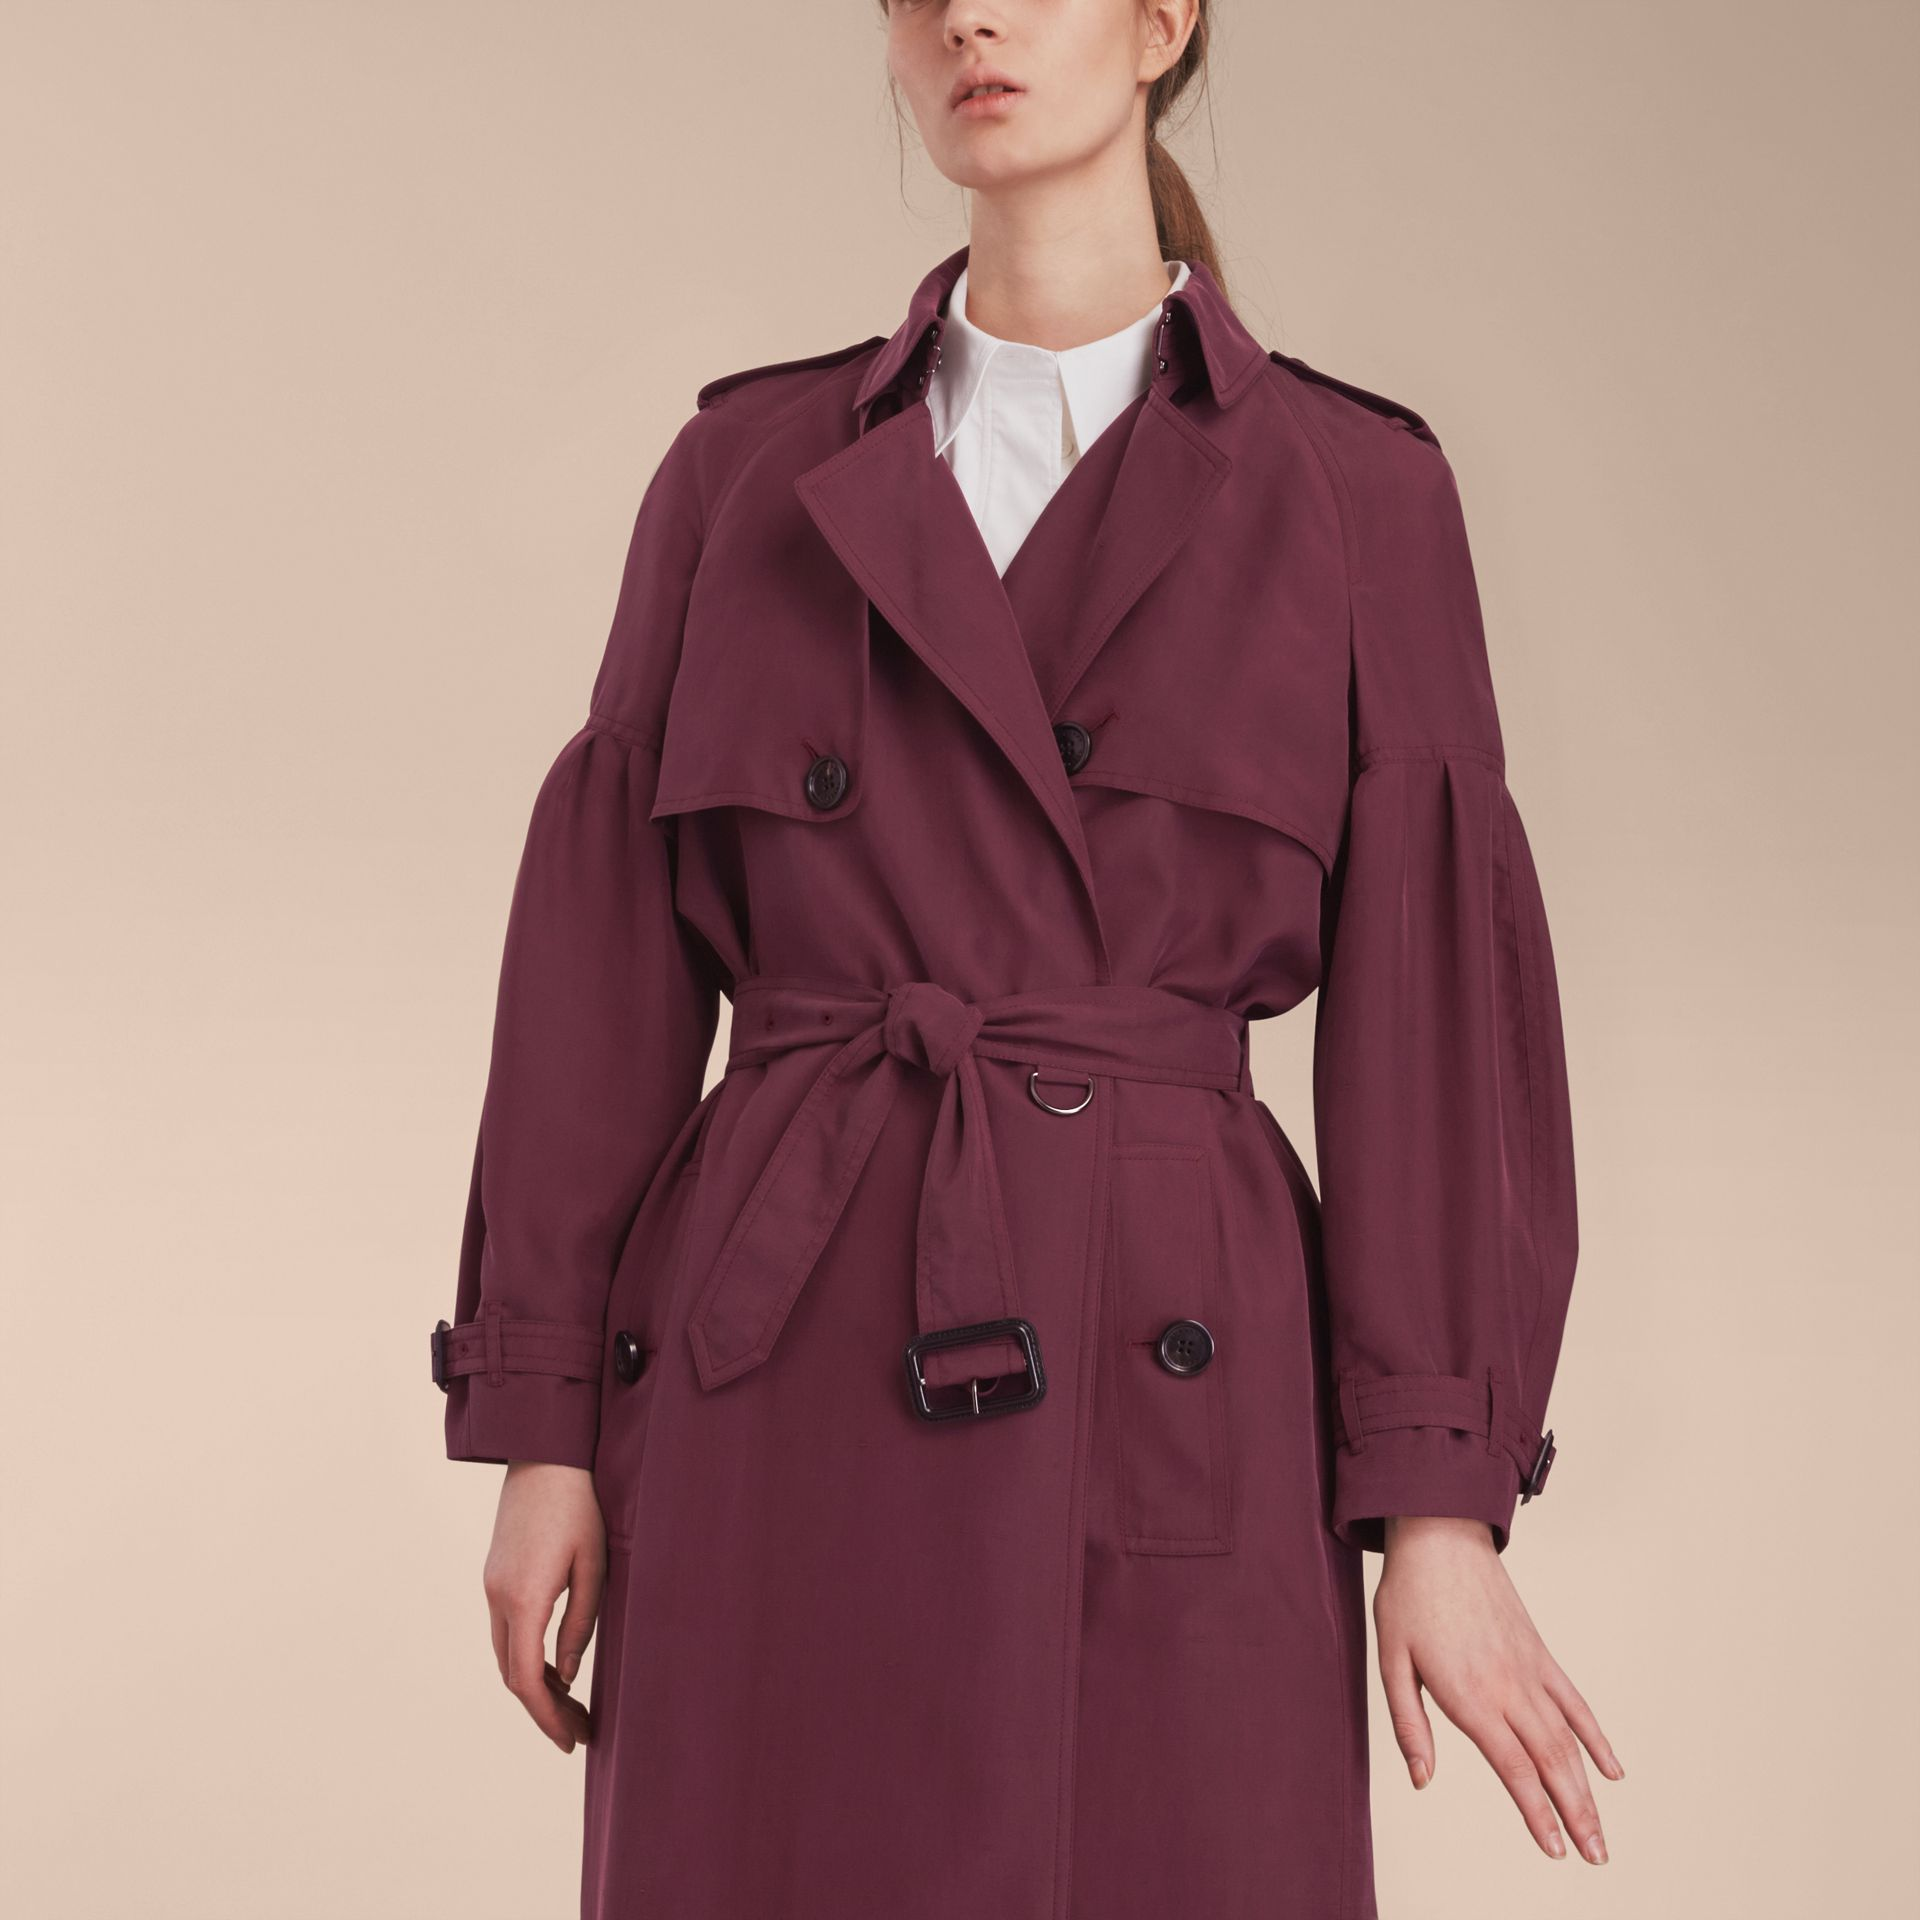 Oversize Silk Trench Coat with Puff Sleeves in Burgundy - Women | Burberry - gallery image 5